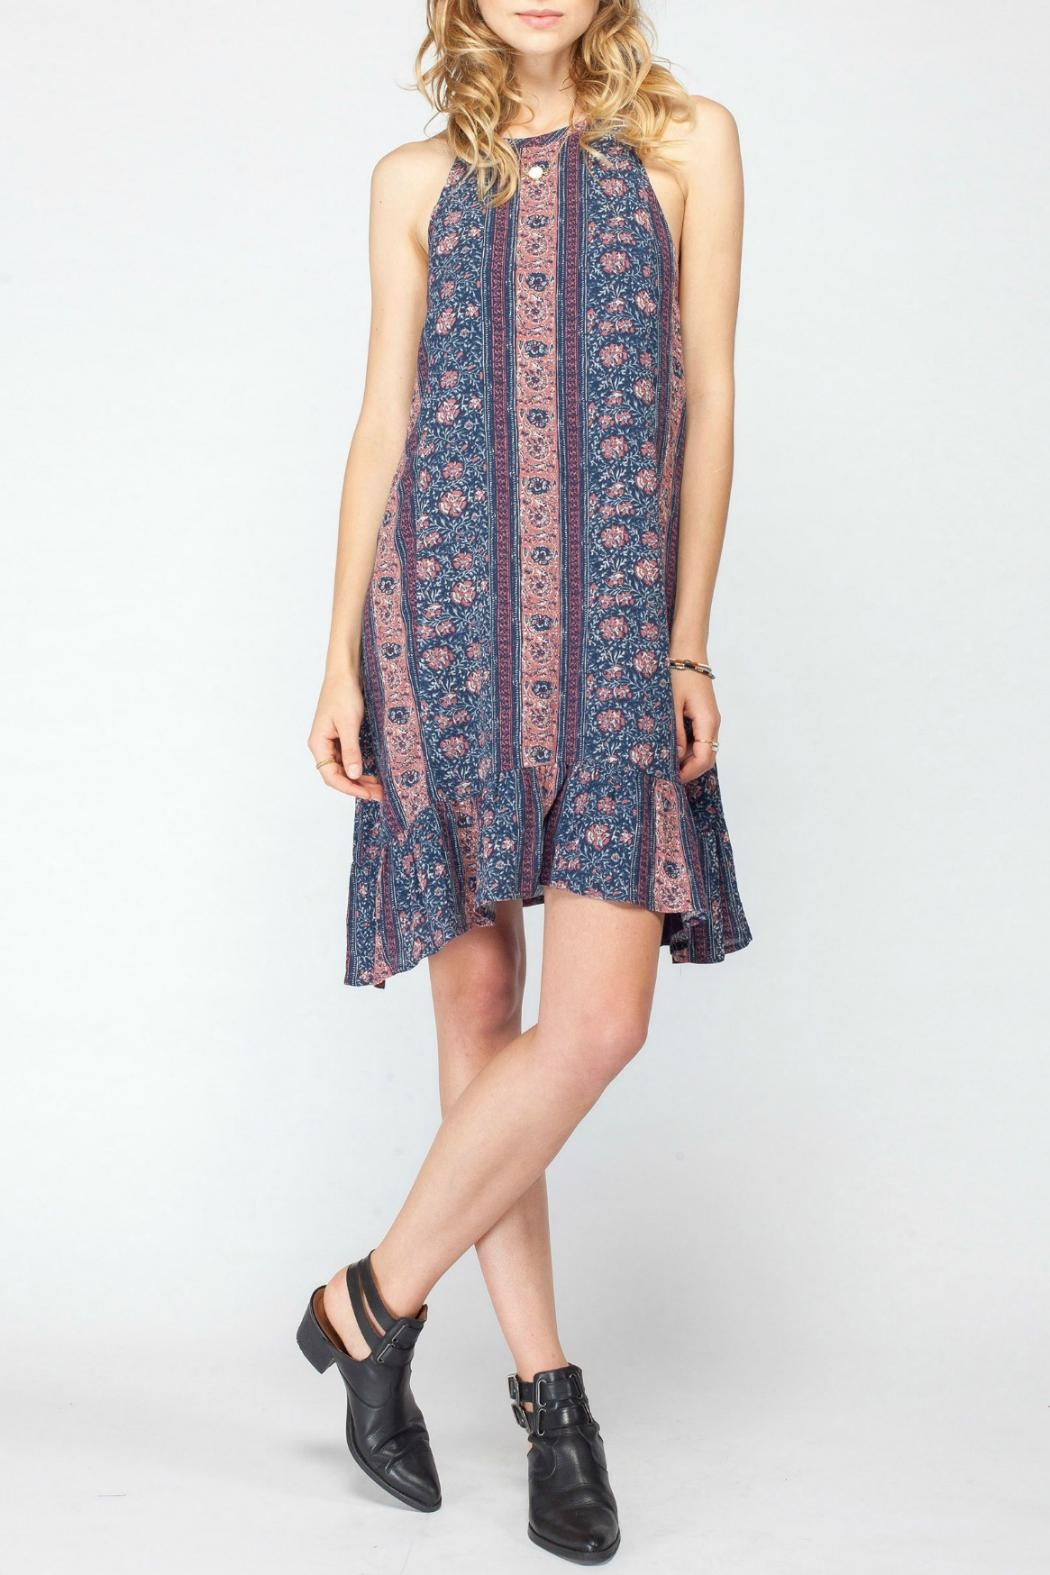 Gentle Fawn Laguna Dress - Front Cropped Image